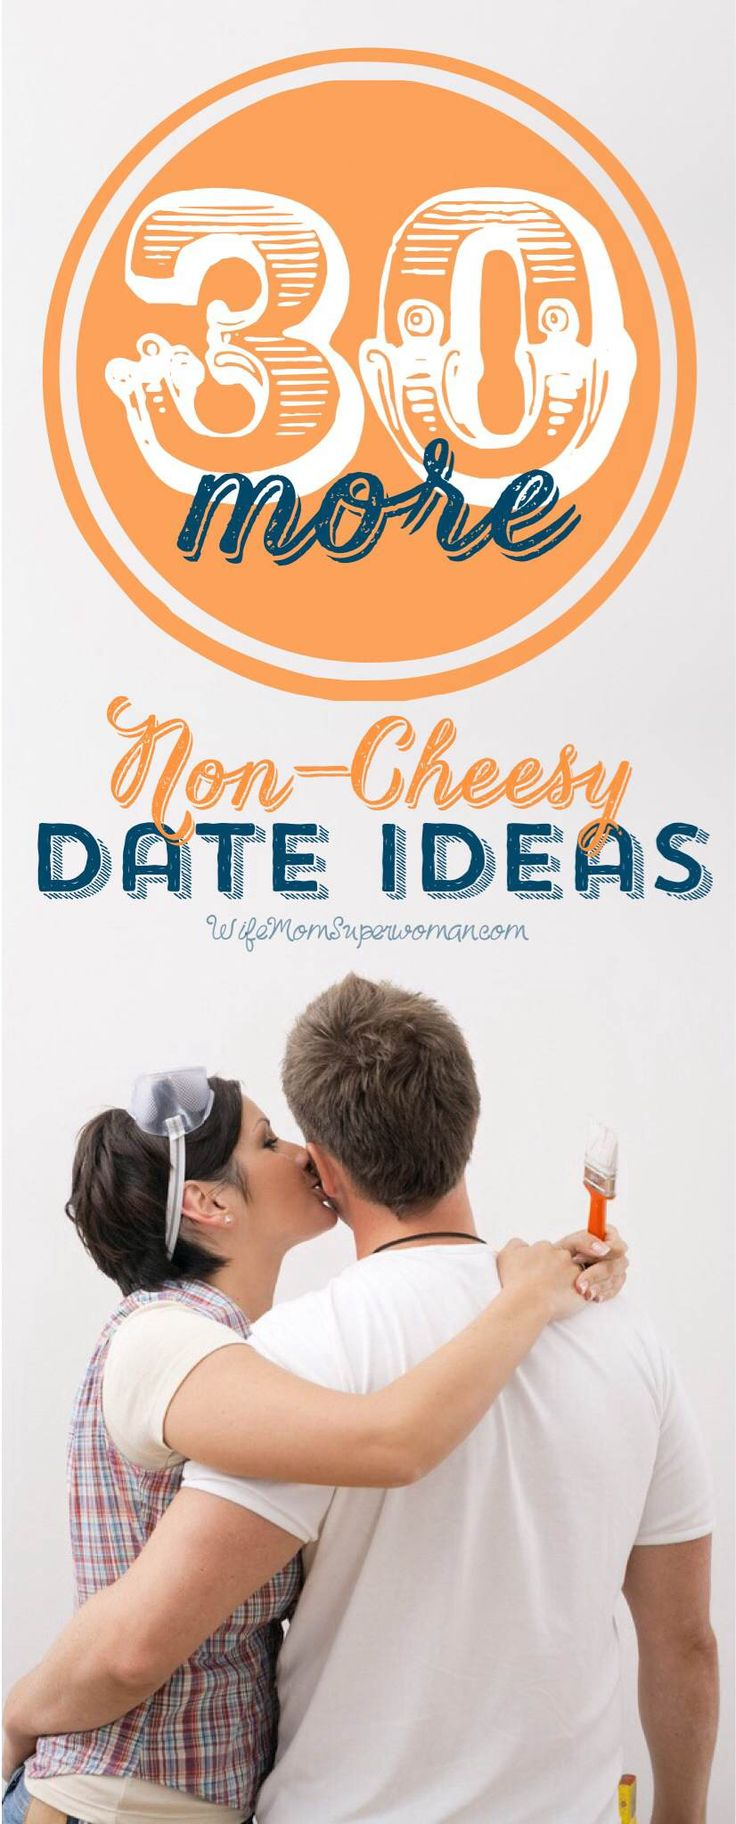 "Pls re-pin!! 30 MORE (Non-Cheesy) Date Ideas for: The Adventurous, The PDA Peeps, The Parentals, The Ballers, The Budget Friendly Fam & The Dreamers! (a follow up to the original Pinterest ""hit"" which has 400,000+ pins!)"